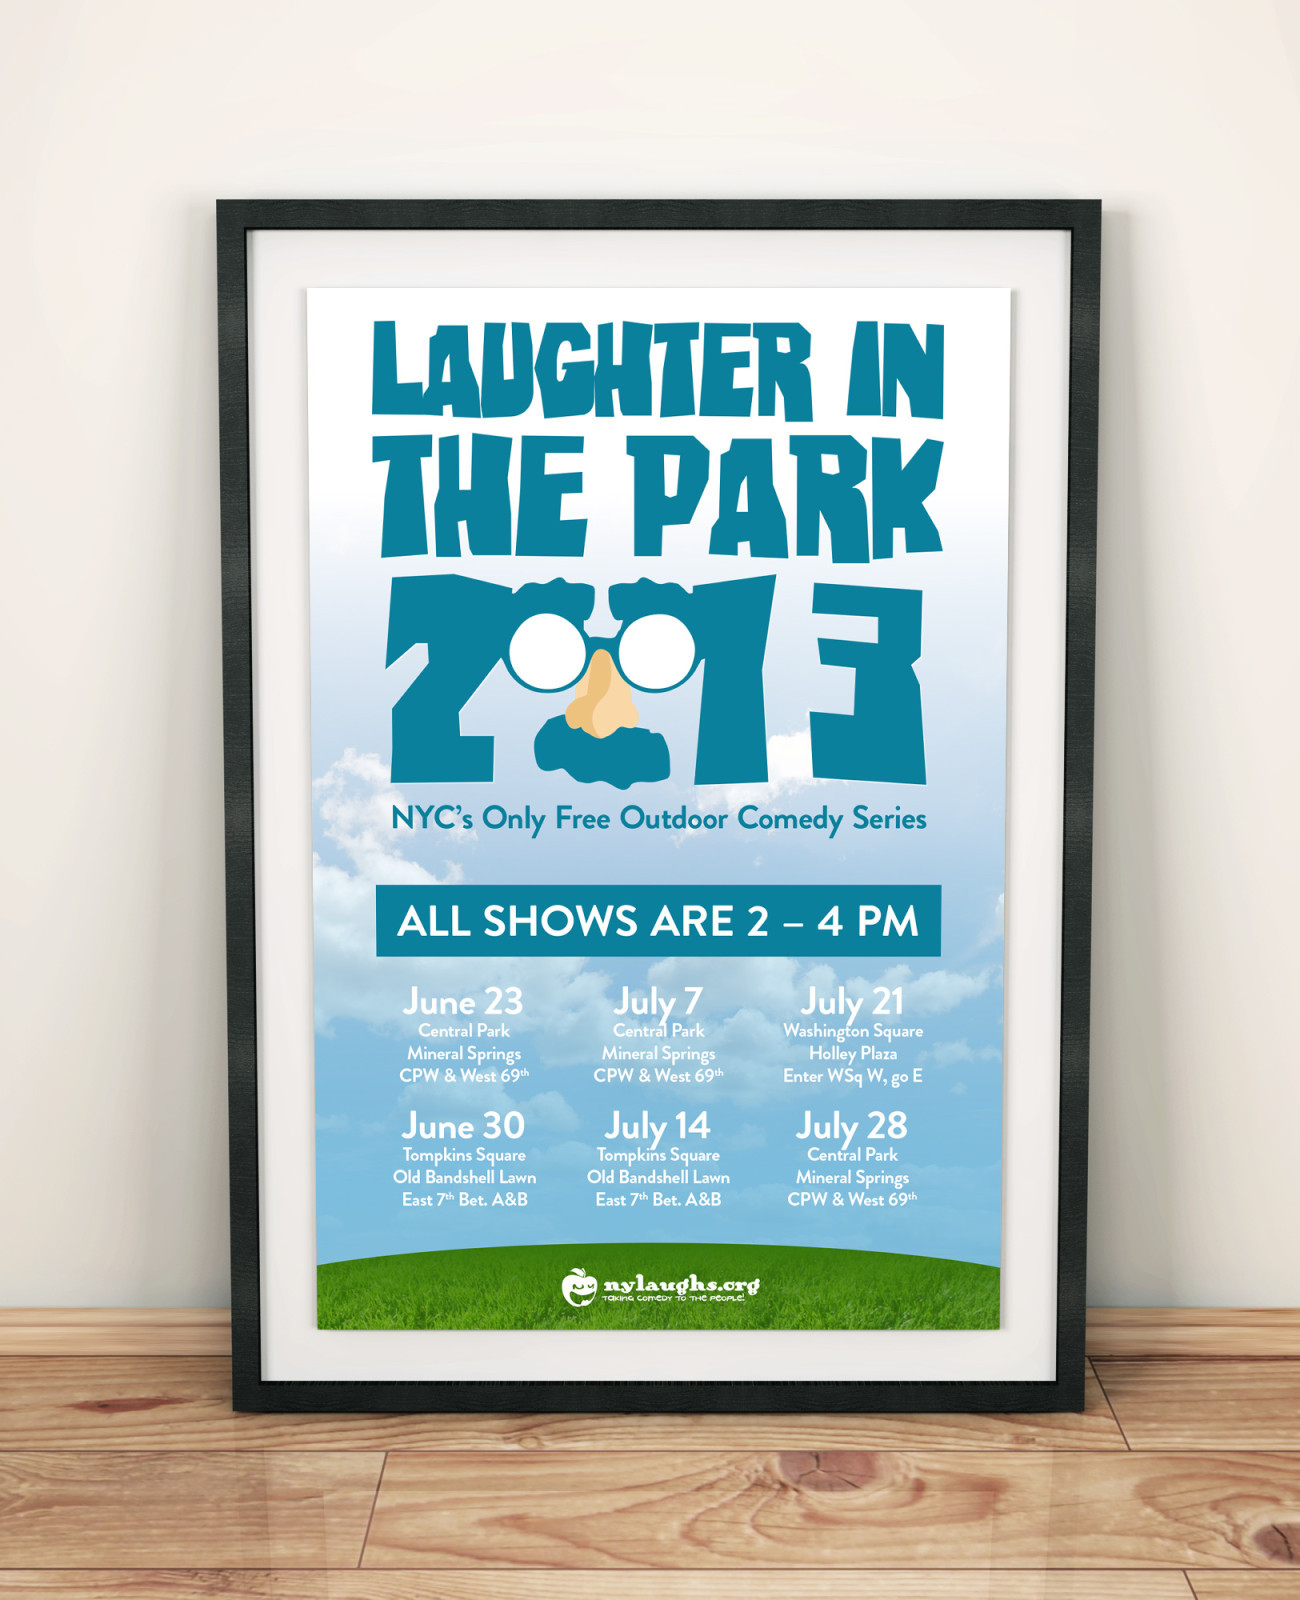 Laughter in the Park Poster 2013, designed by Query Creative in the Hudson Valley